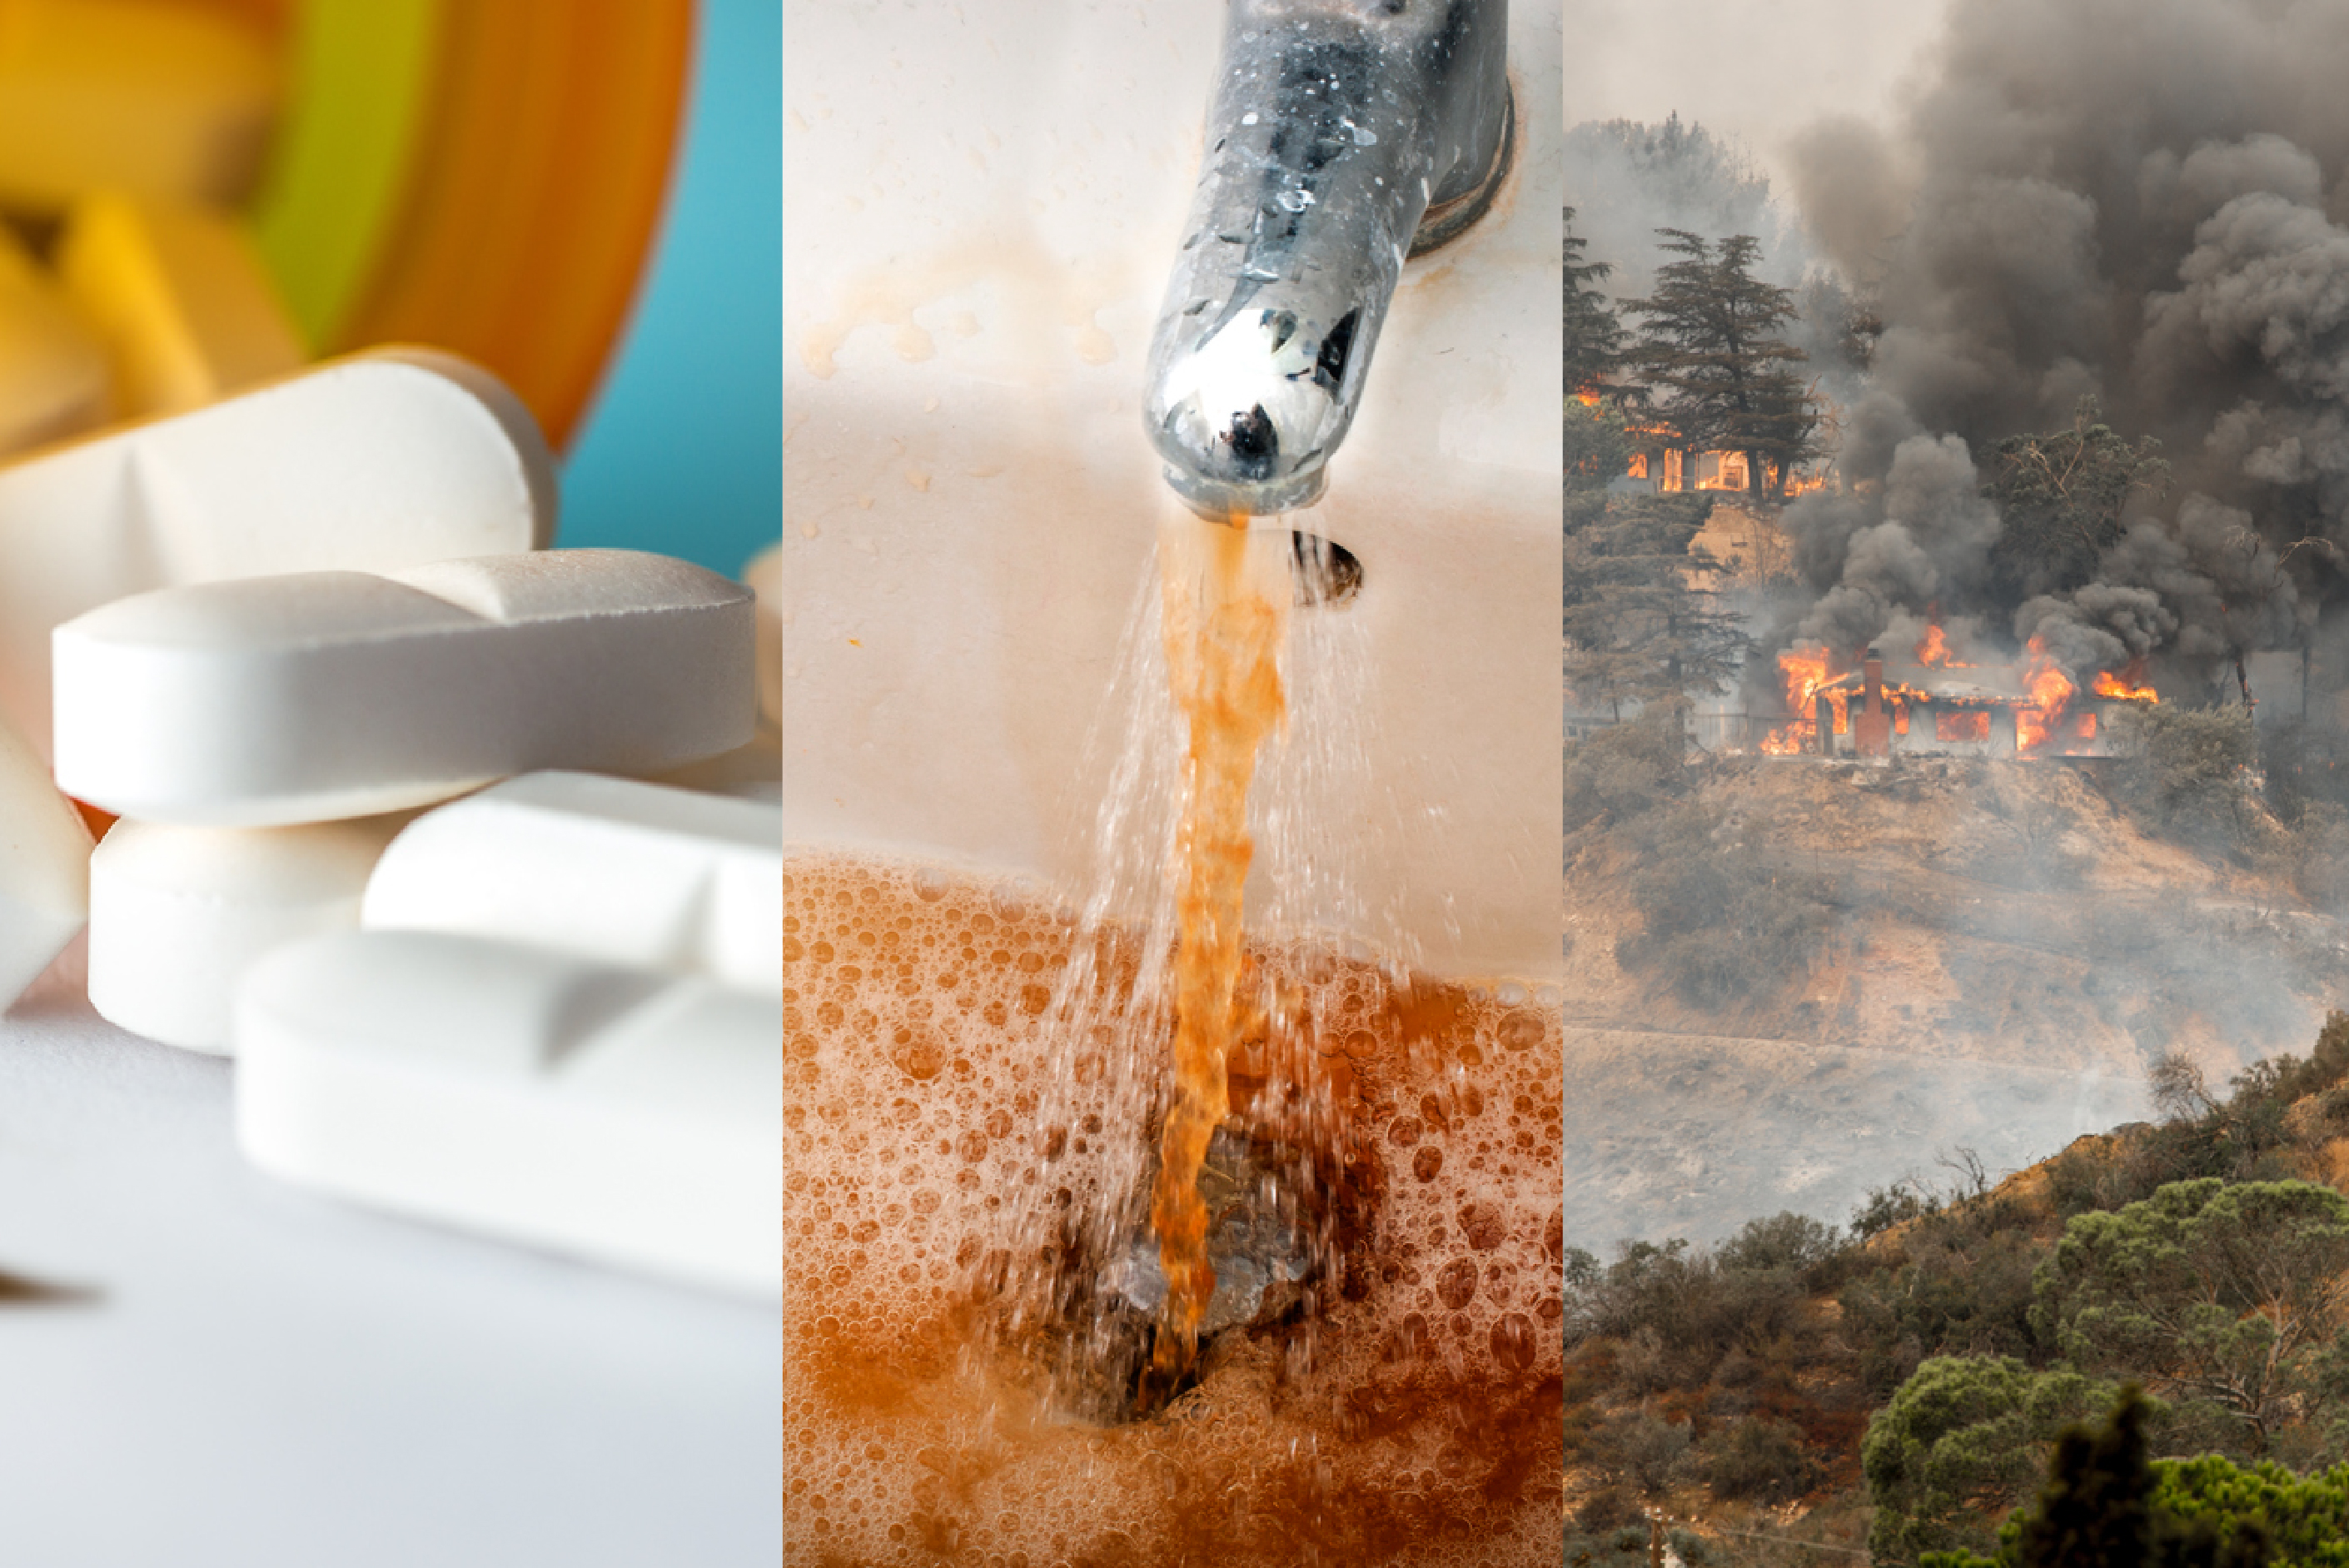 Collage of types of large-scale crimes including pills, dirty water coming out of a faucet and a forest fire